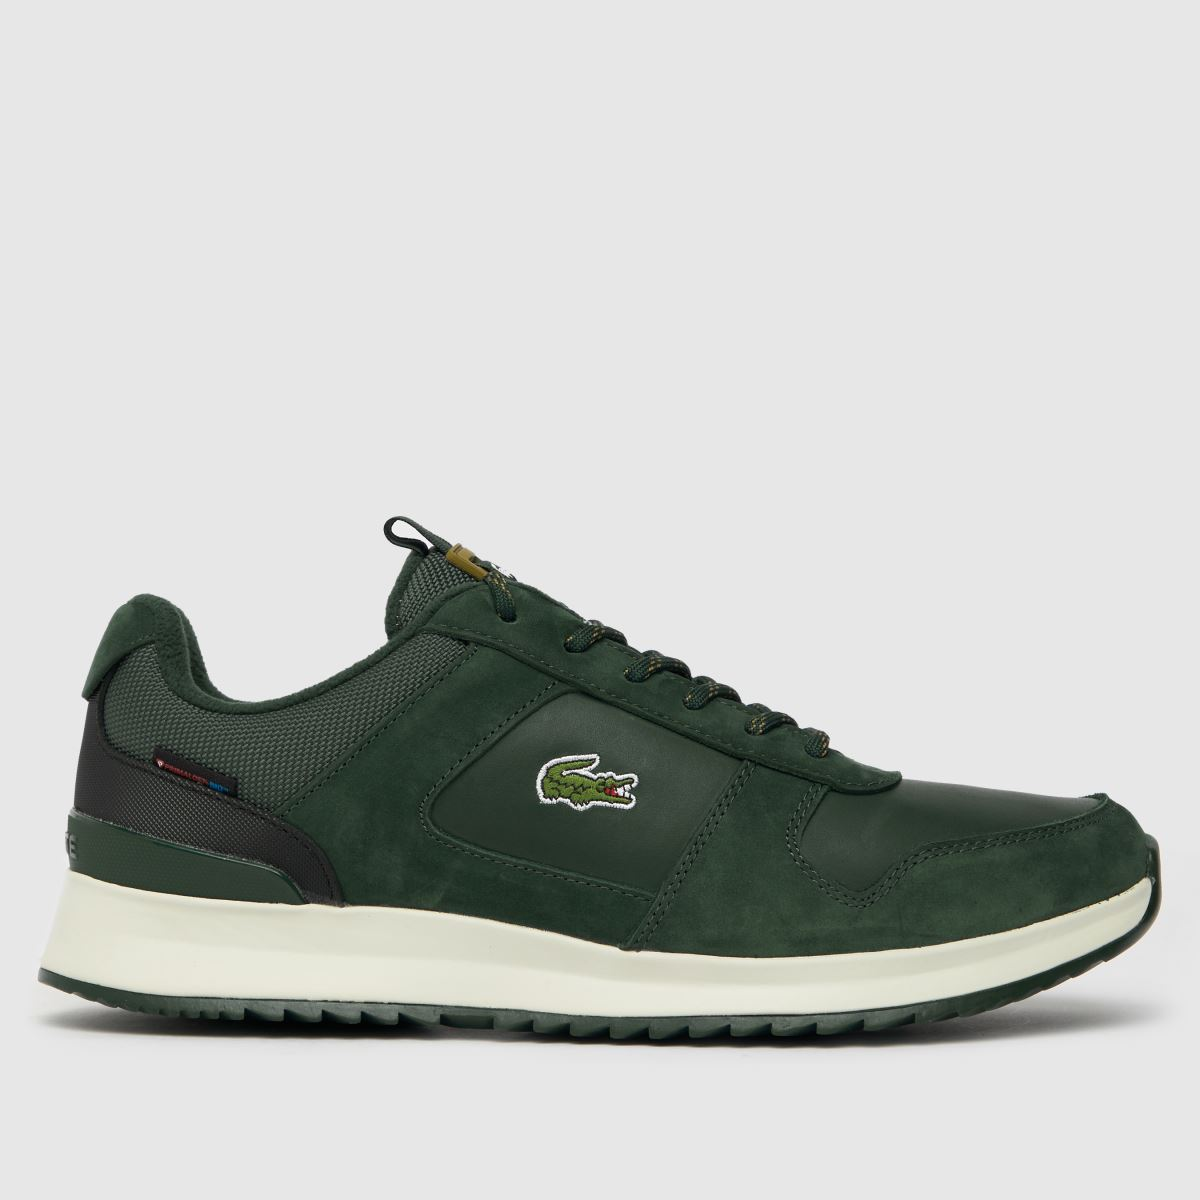 Lacoste Dark Green Lacsote Joggeur 2.0 Trainers